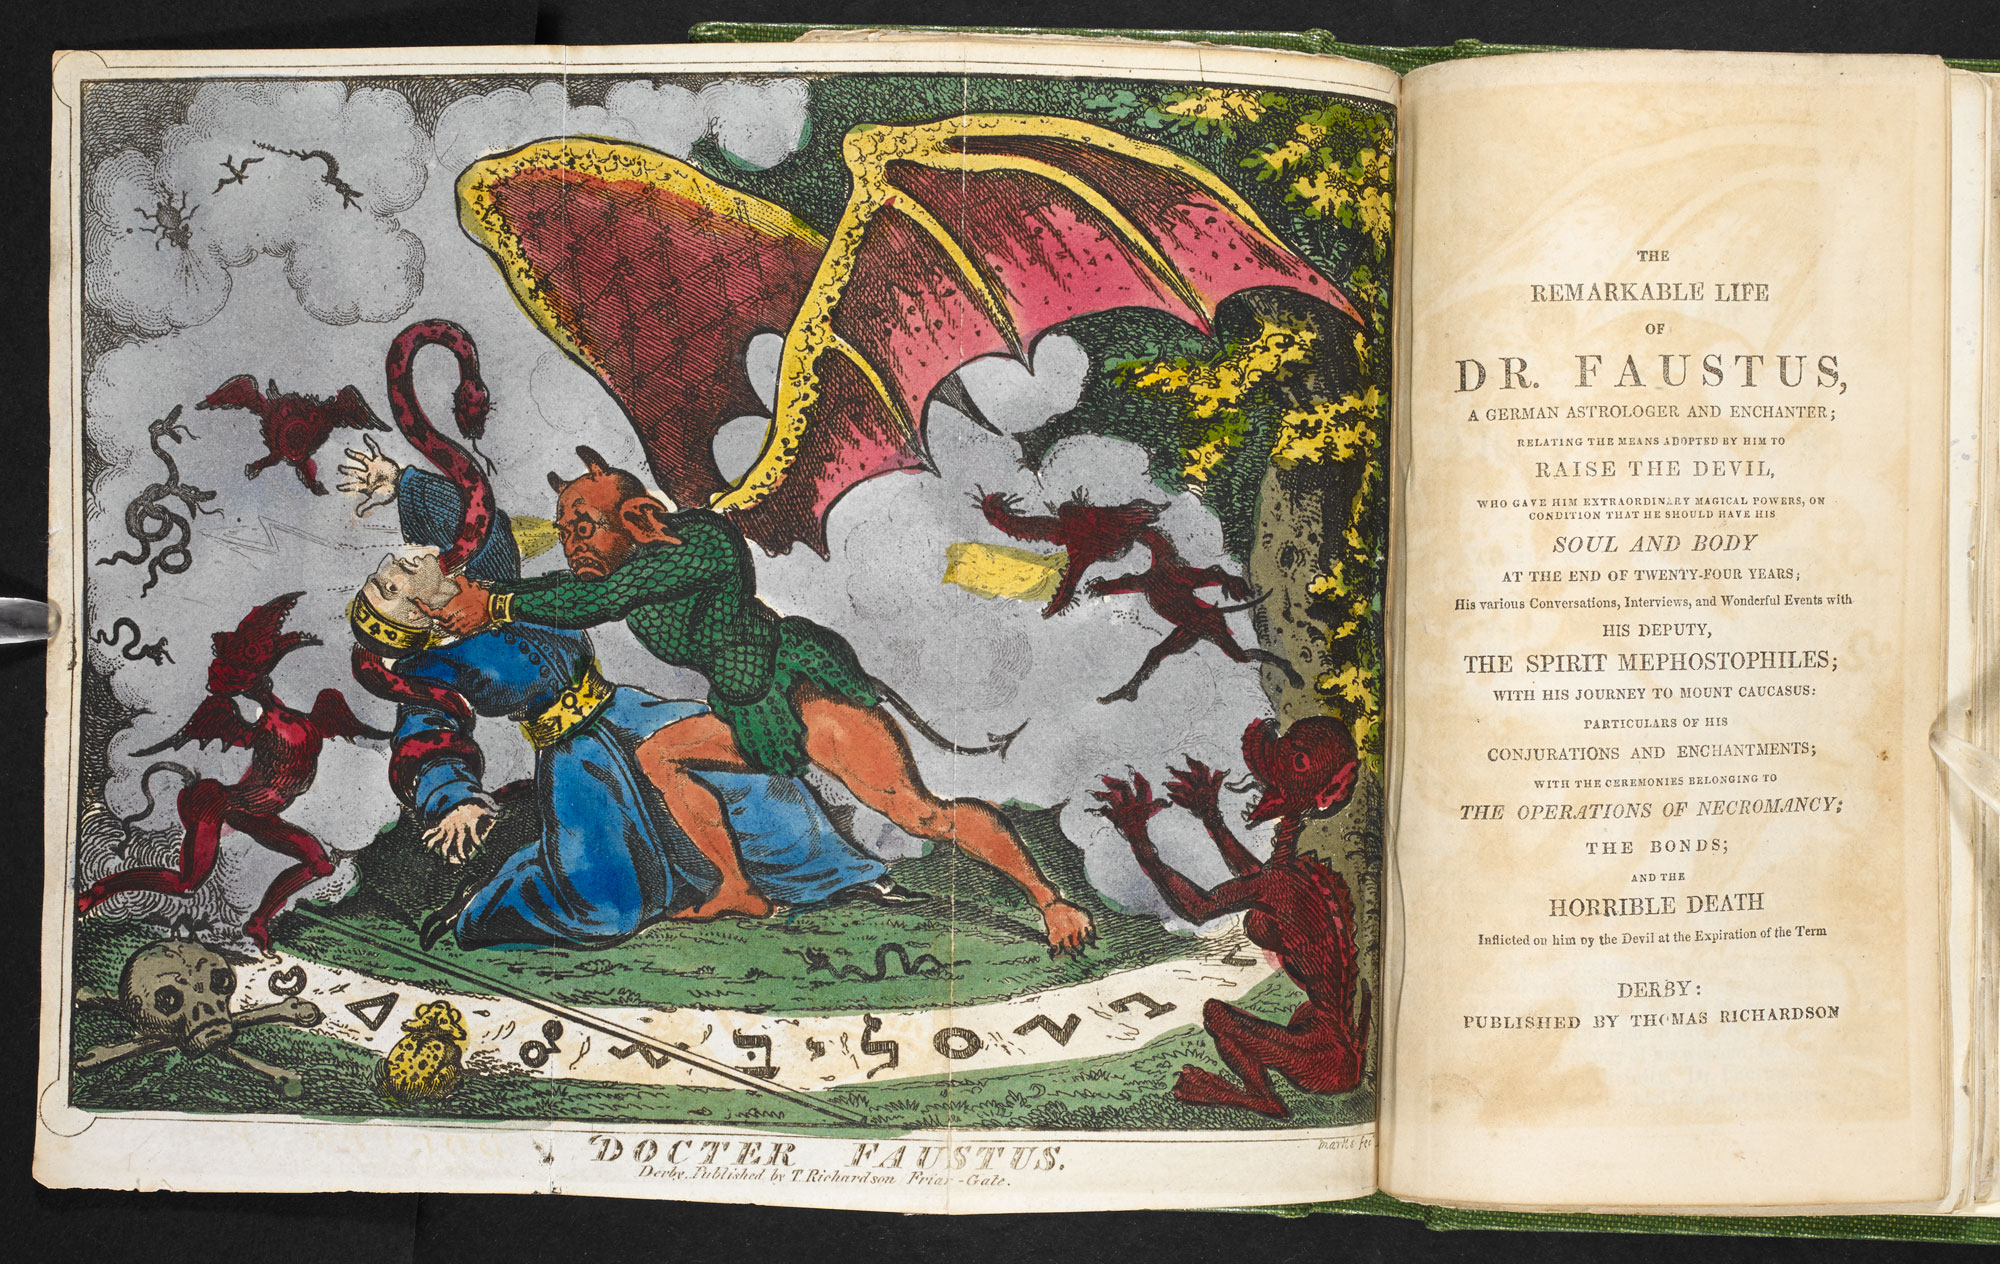 The remarkable life of Dr. Faustus [page: fold-out frontispiece and title page]